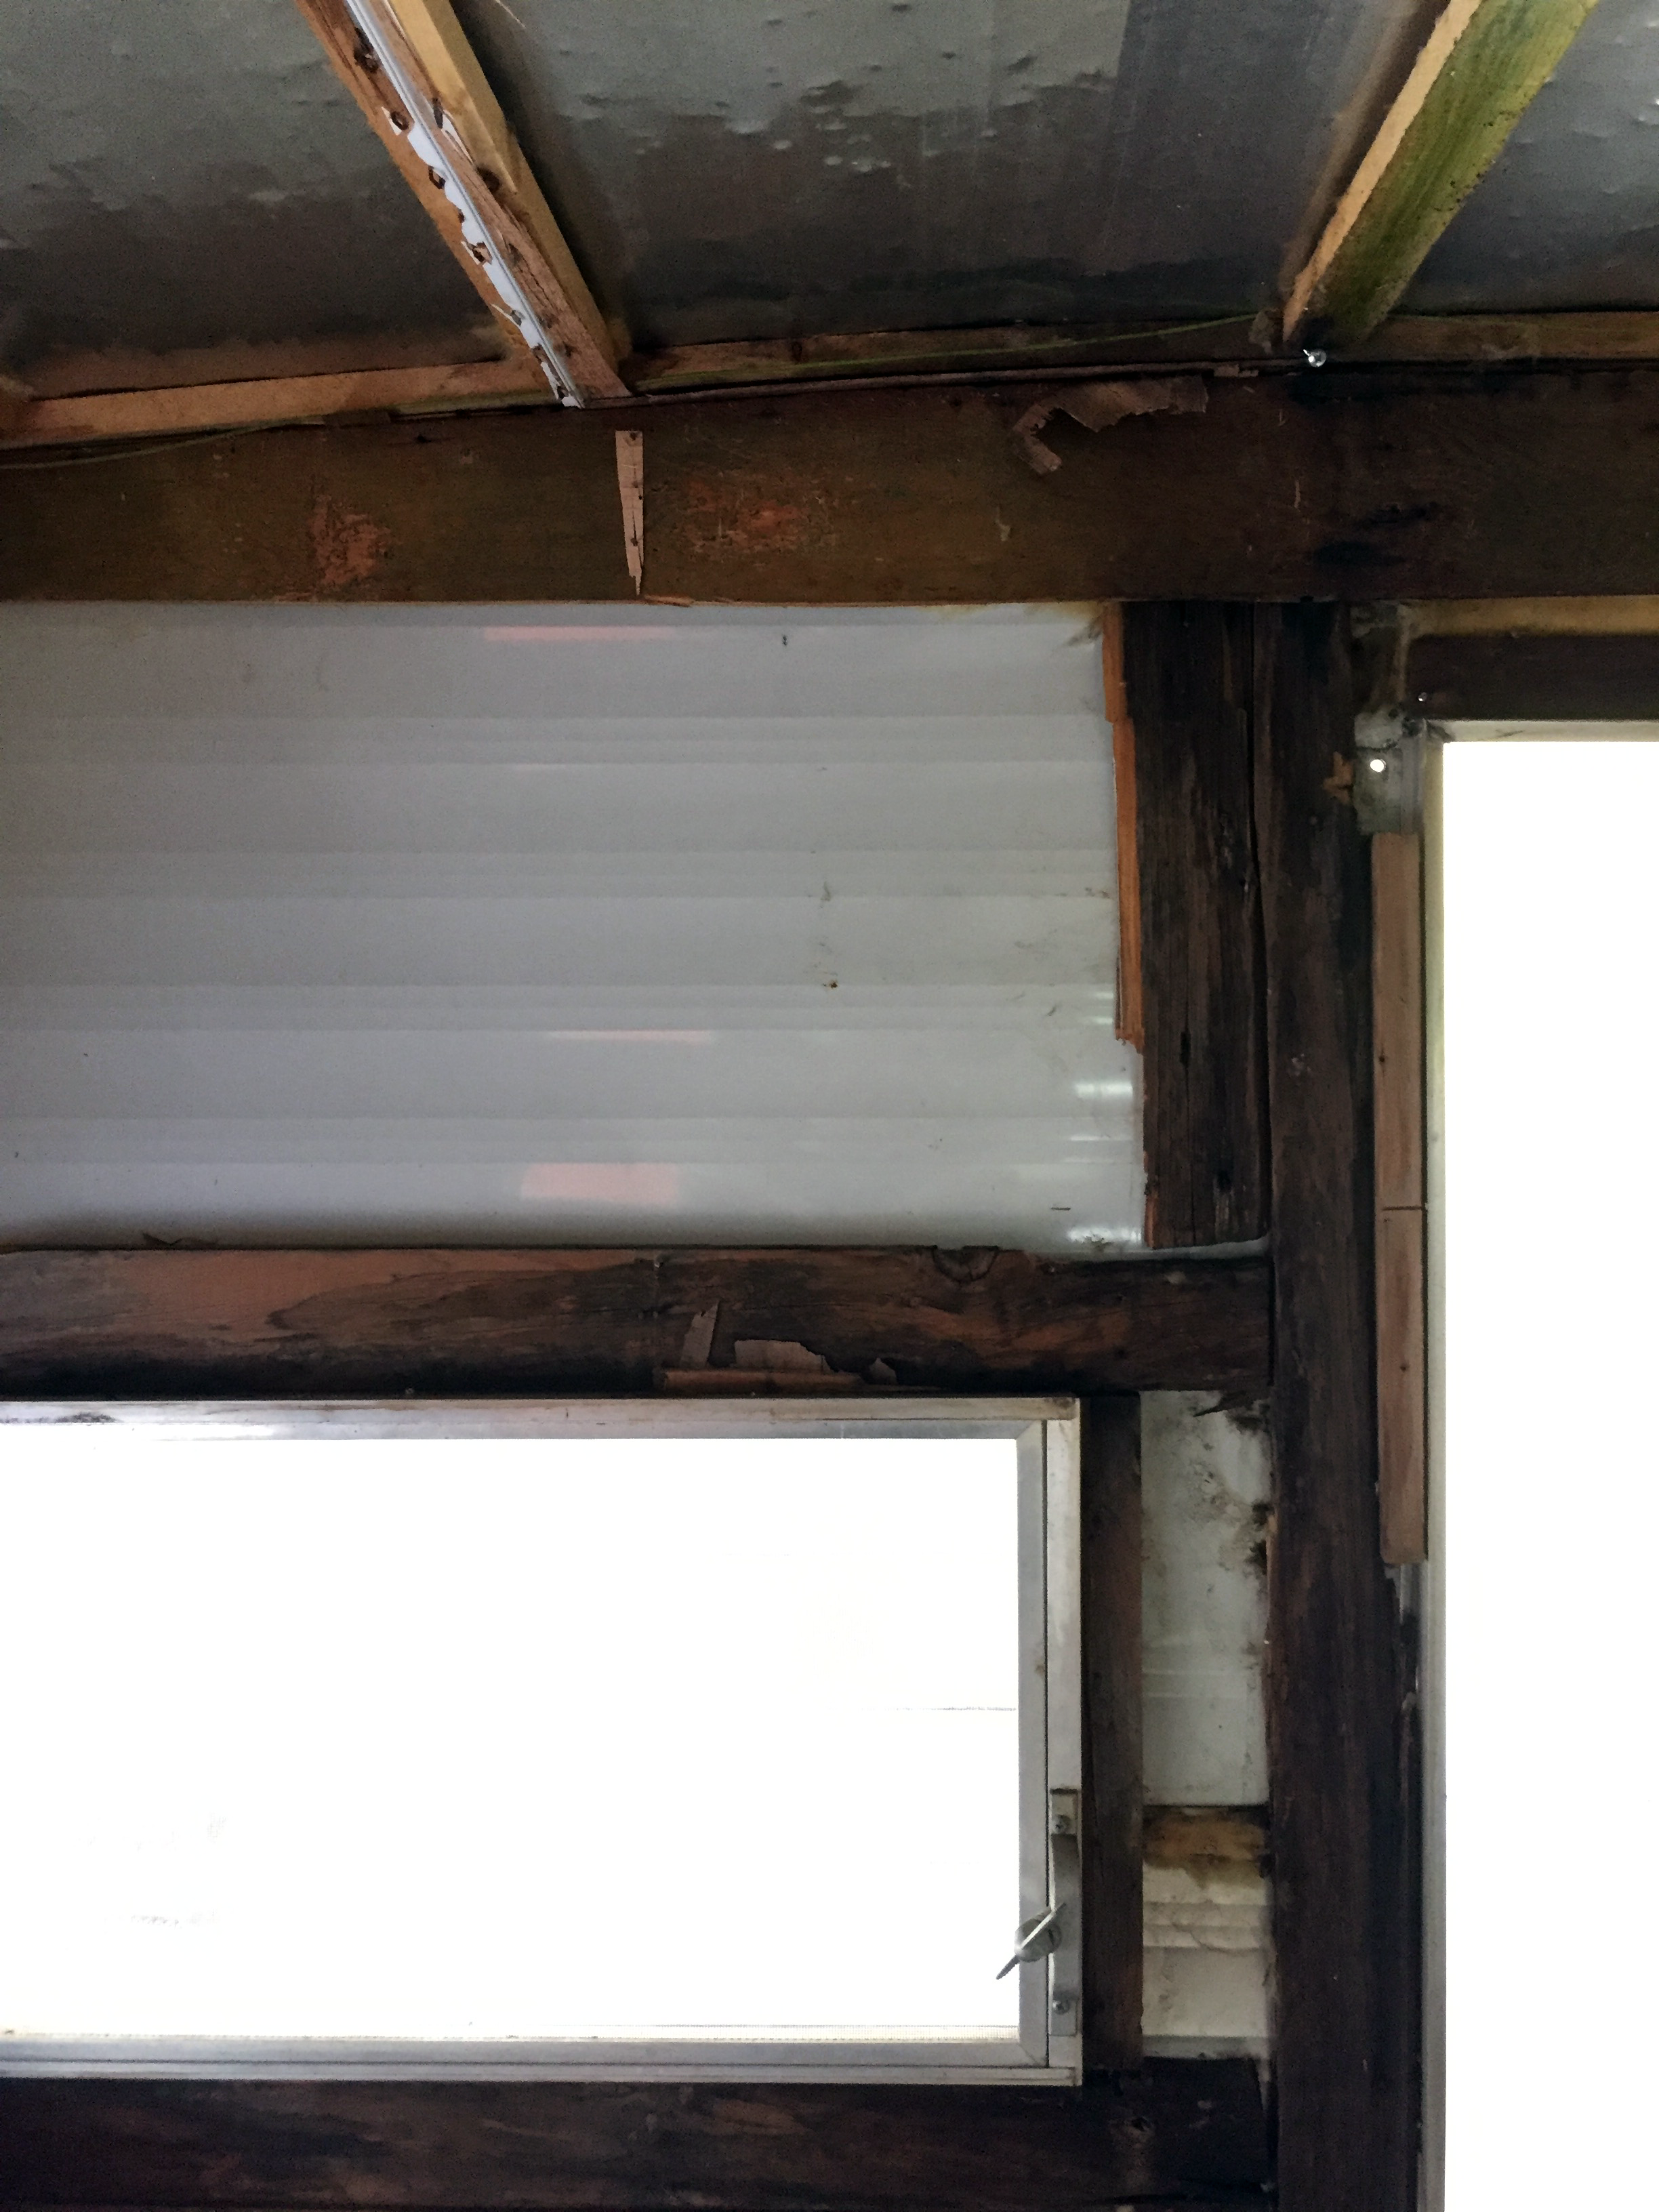 Post-demo —detail of the dinette area window by the exterior door